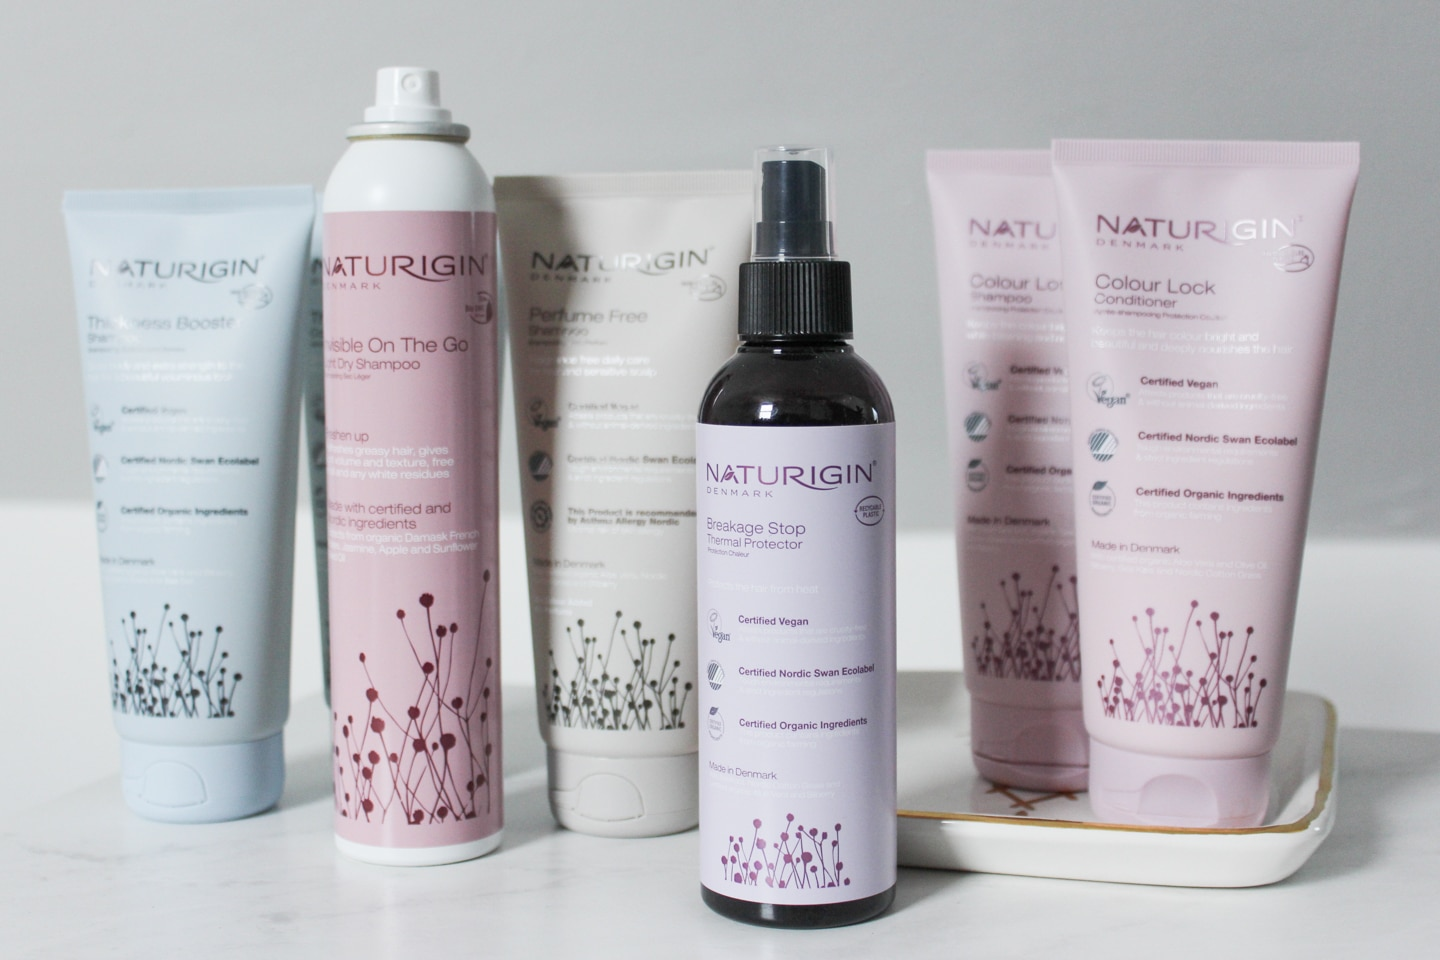 Naturigin haircare products